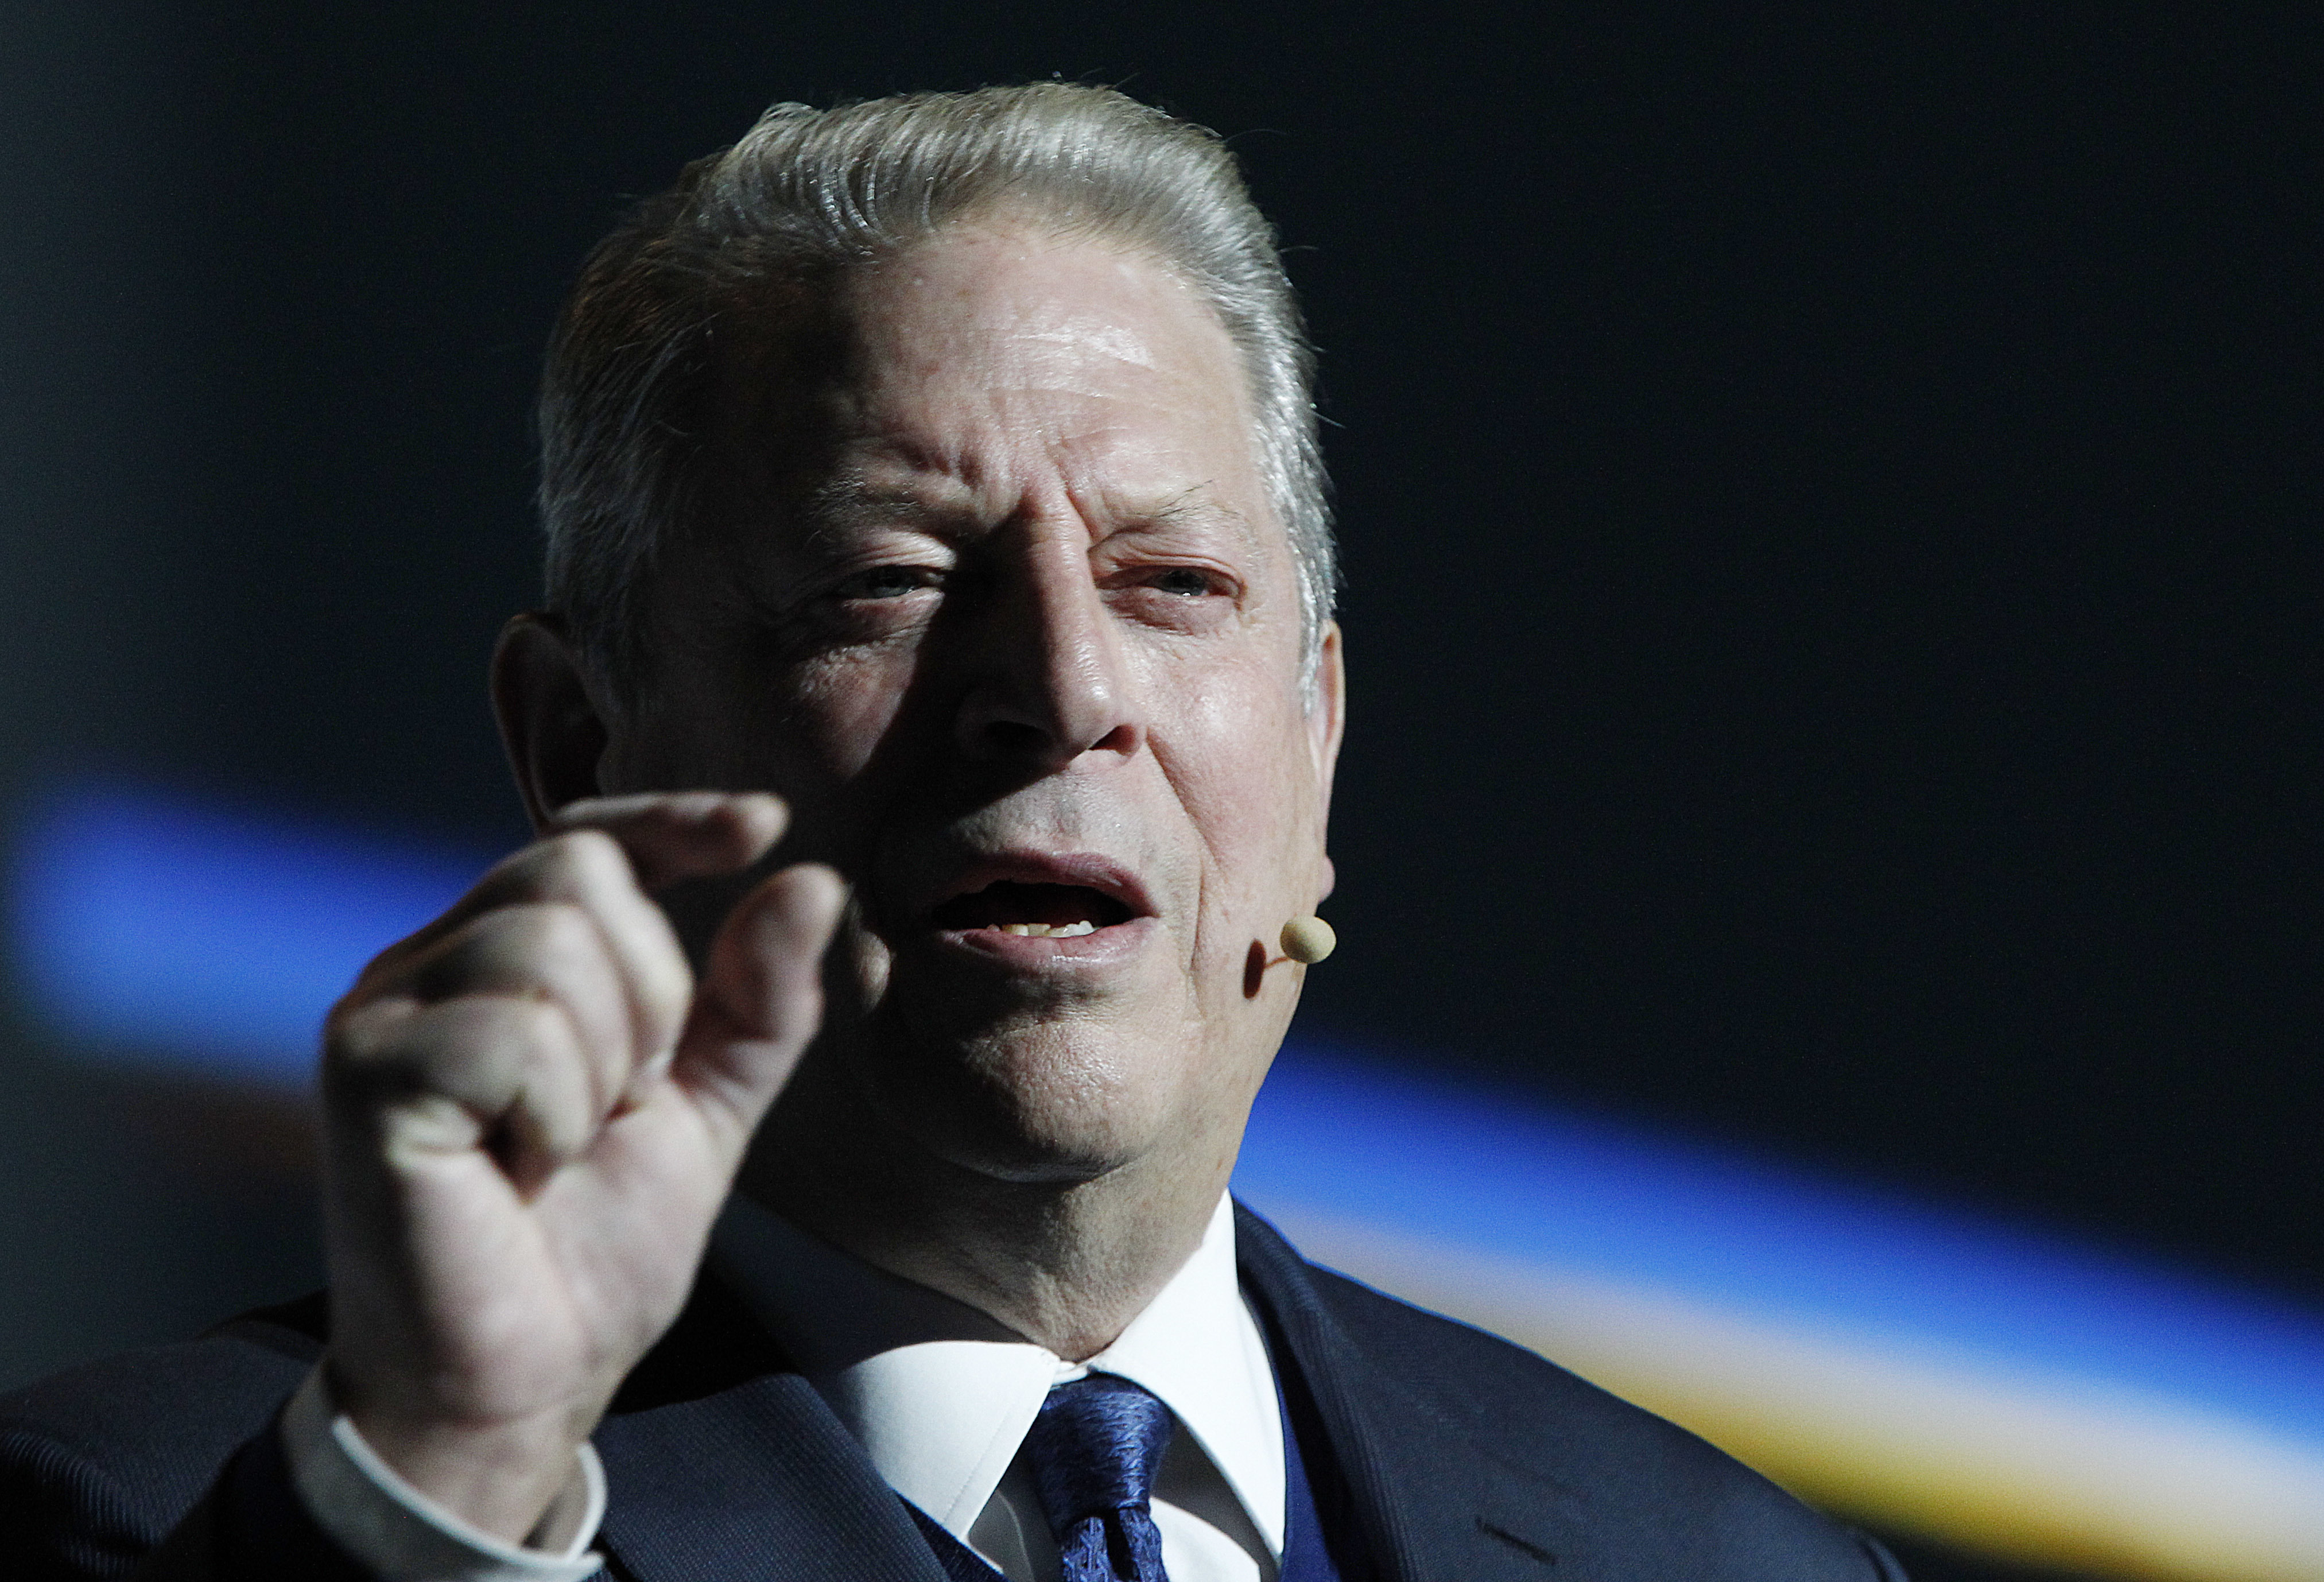 Al Gore-led group encourages students to ditch school for climate change